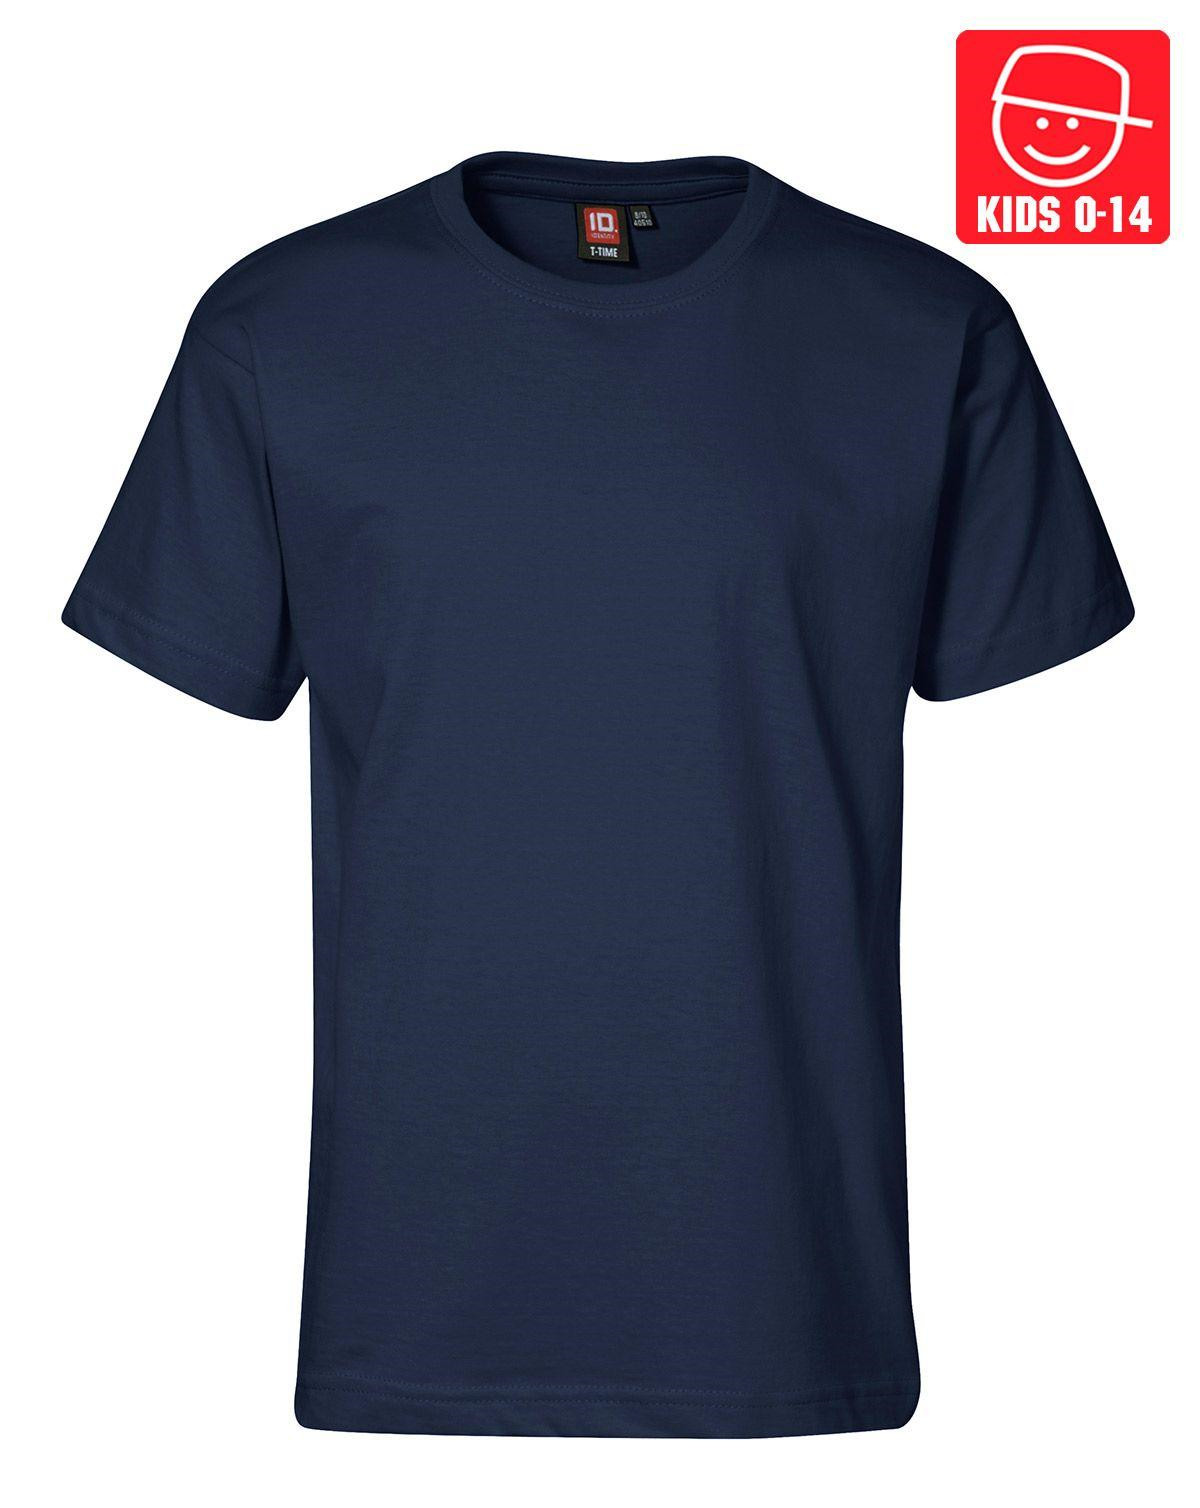 Image of   ID T-TIME T-shirt (Navy, 158)